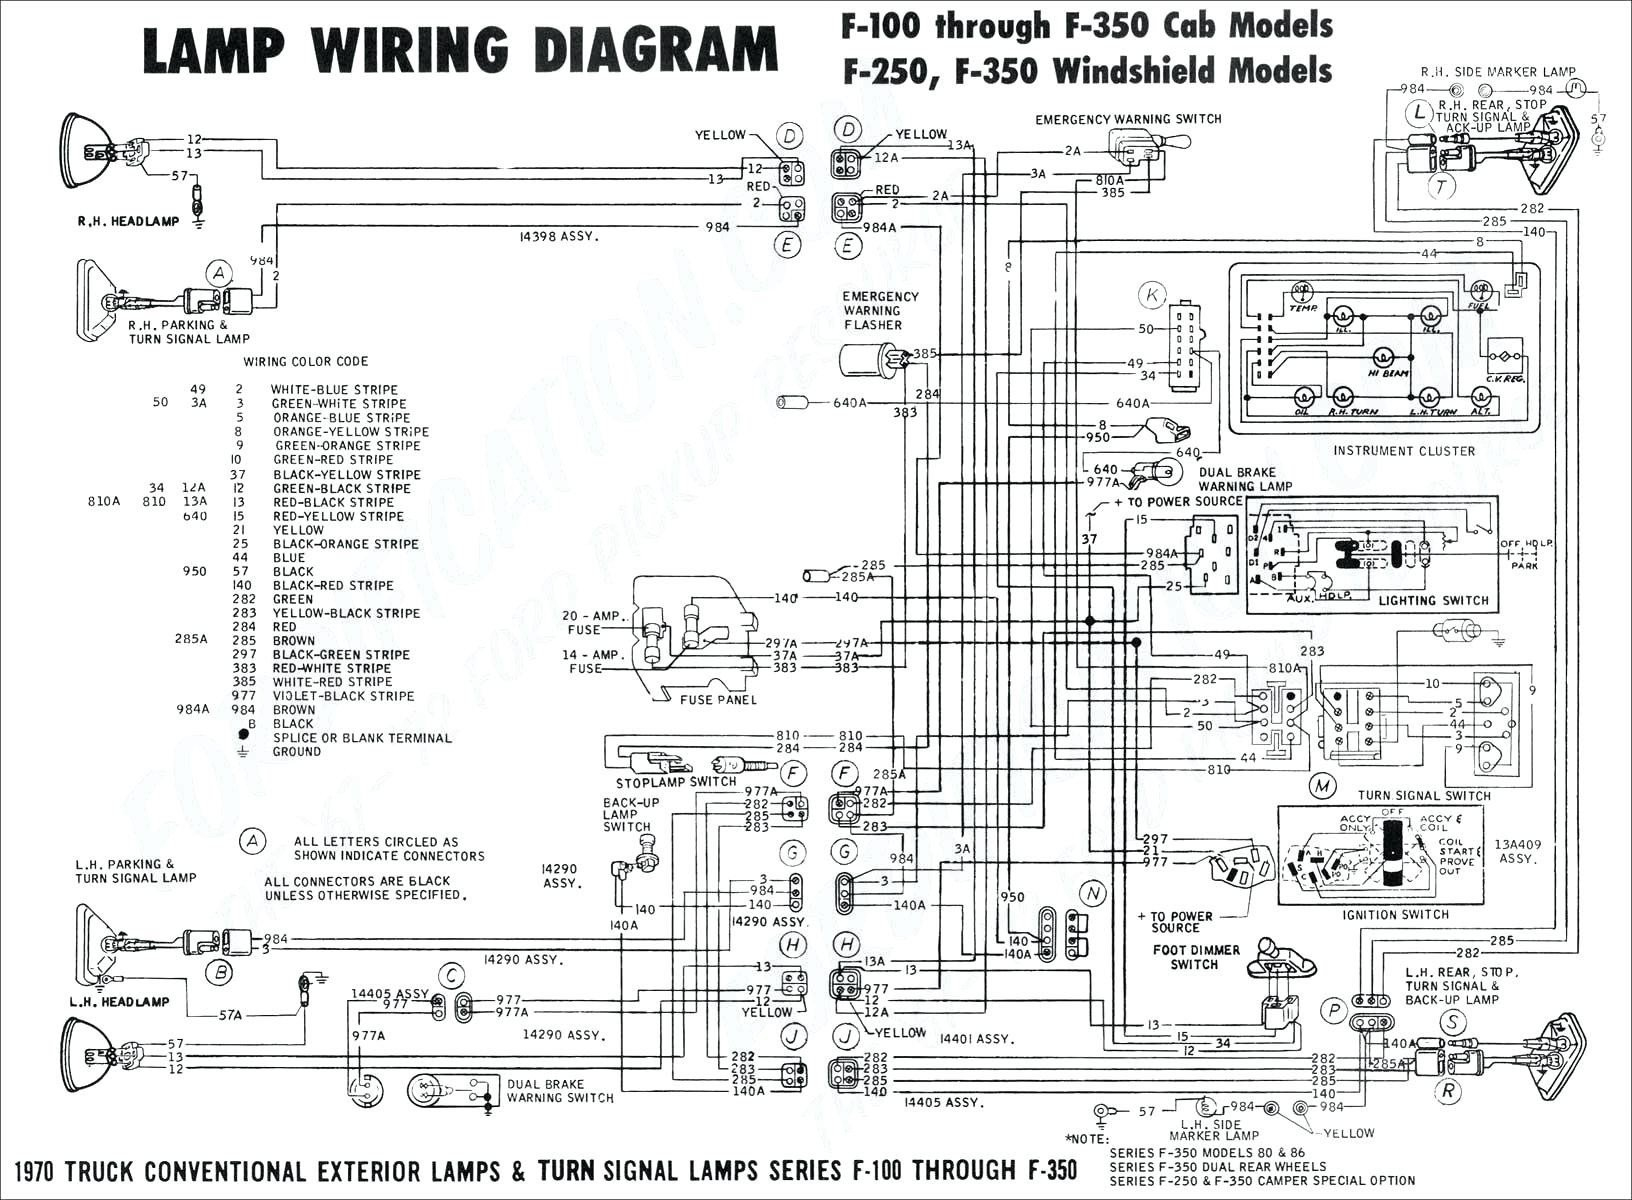 Tail Light Wiring Diagram 2012 F150 | Wiring Diagram - Trailer Rear Lights Wiring Diagram